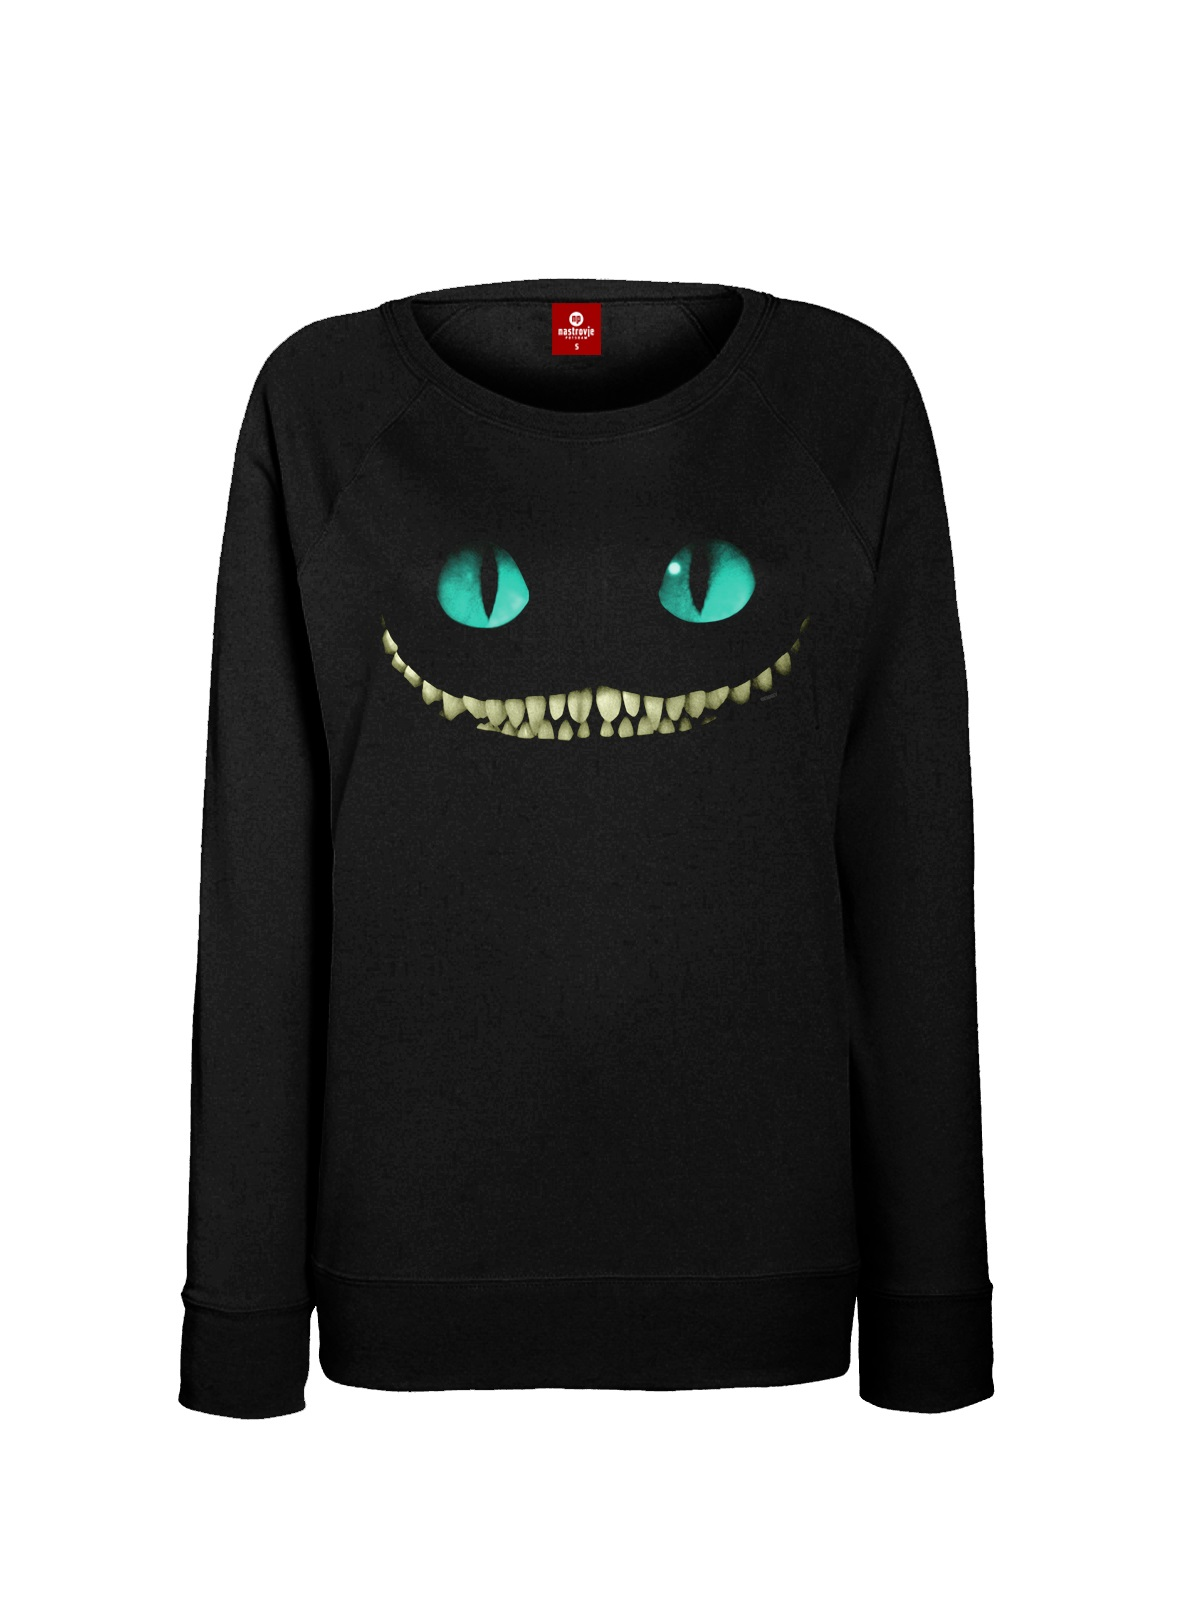 Alice In Wonderland Smile Sweatshirt For Women Black Women Sweater